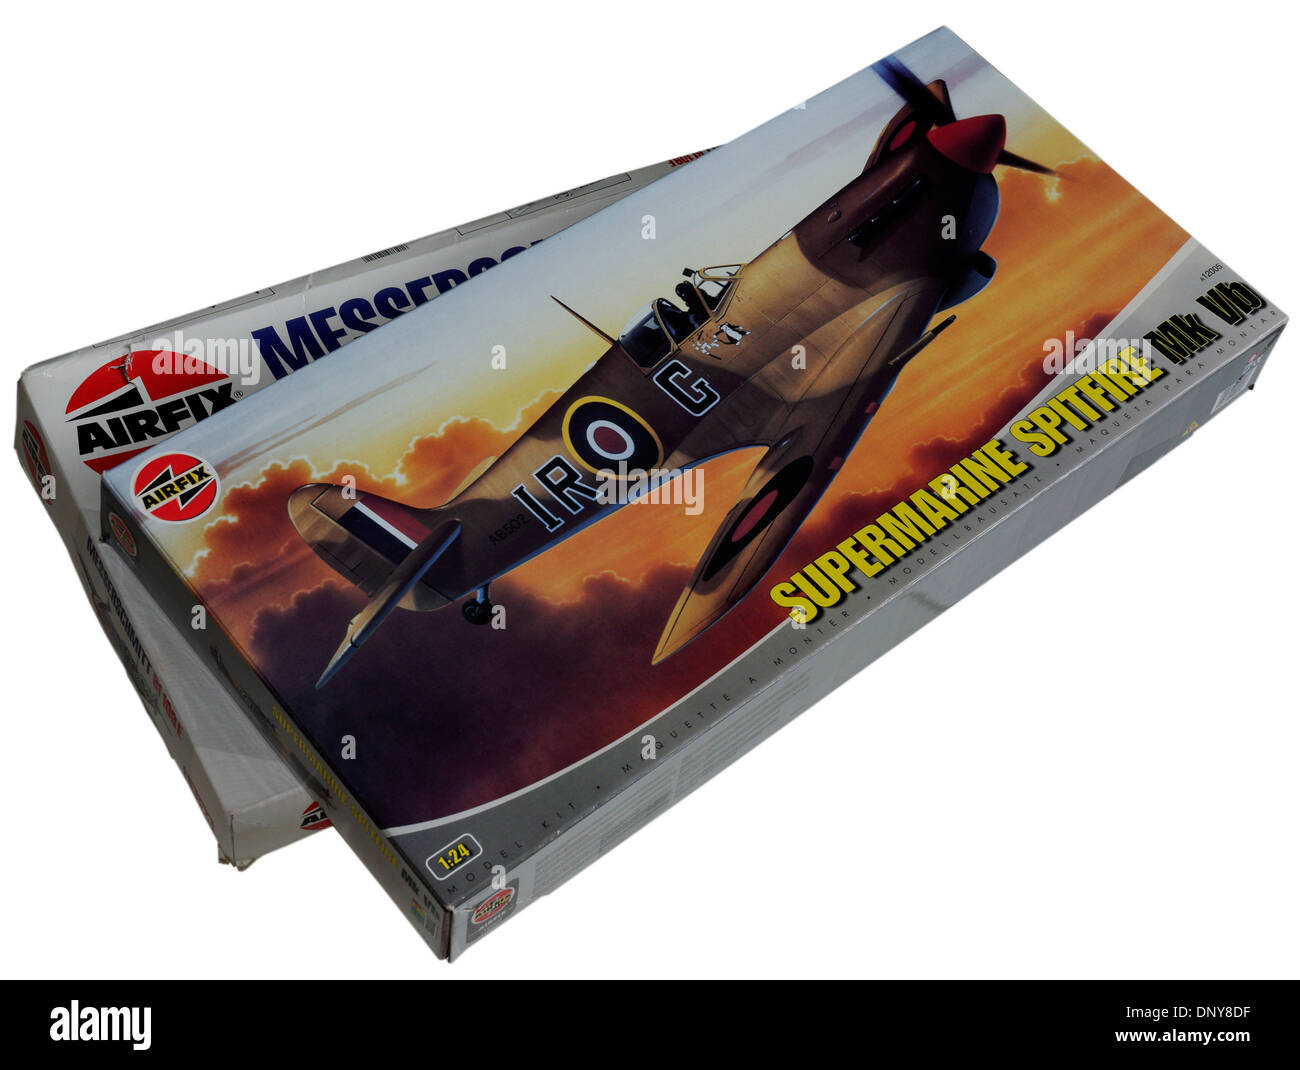 The classic 1/24th scale airfix Spitfre and Messerschmitt Me-109 plastic scale model kits - Stock Image